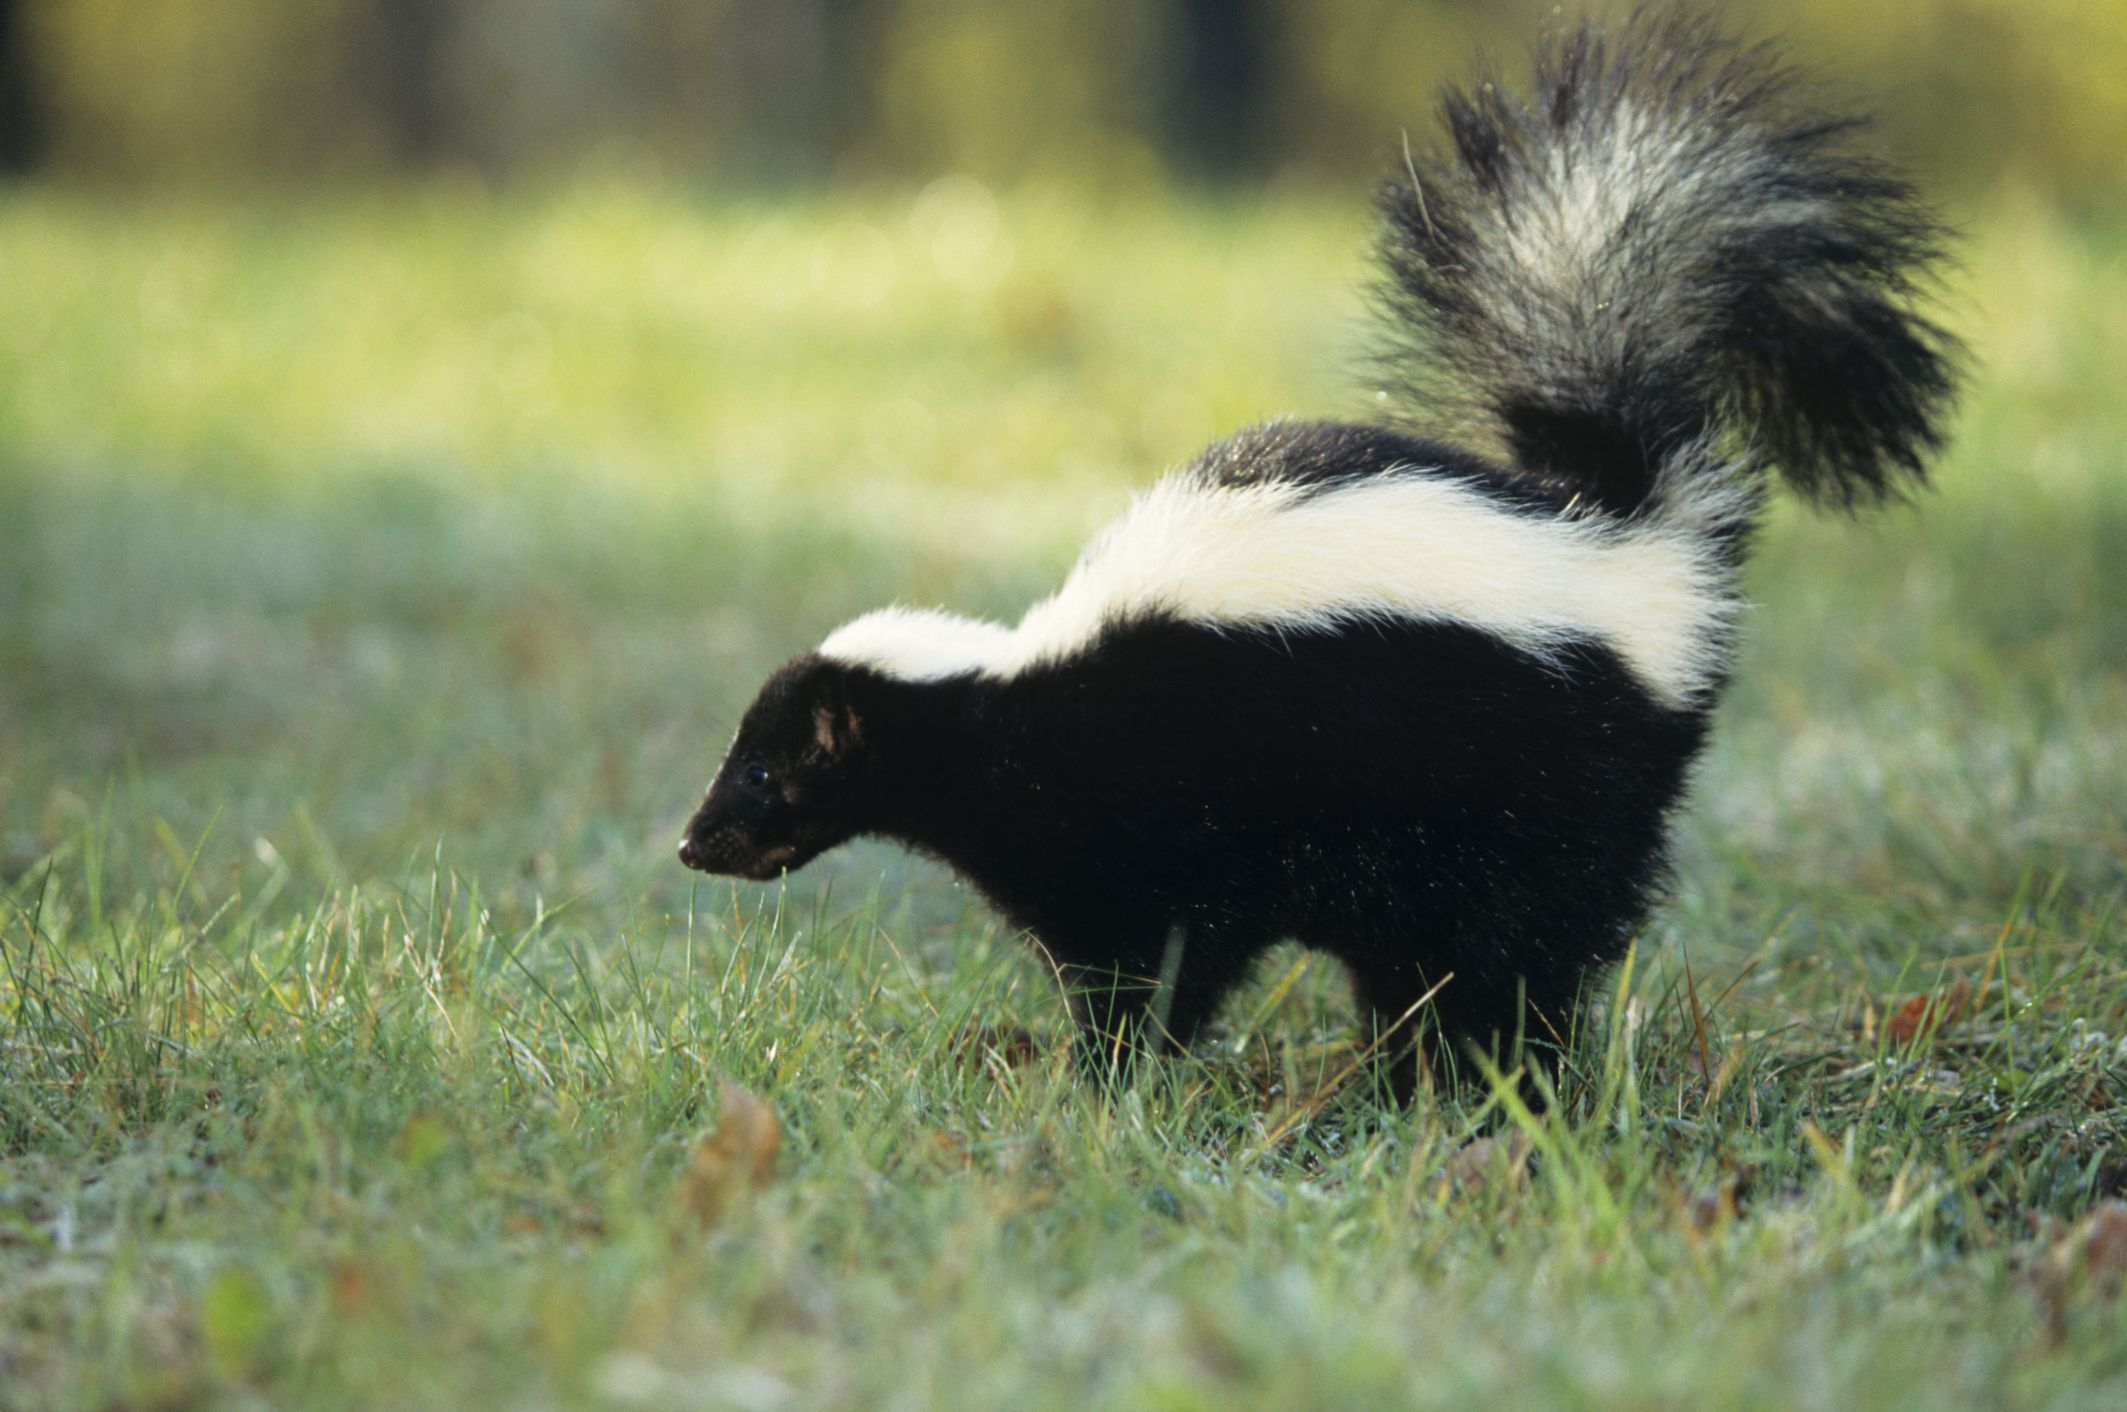 Getting skunk smell out of the house - Find Out Why Skunks Spray And How To Effectively Get Rid Of The Odor